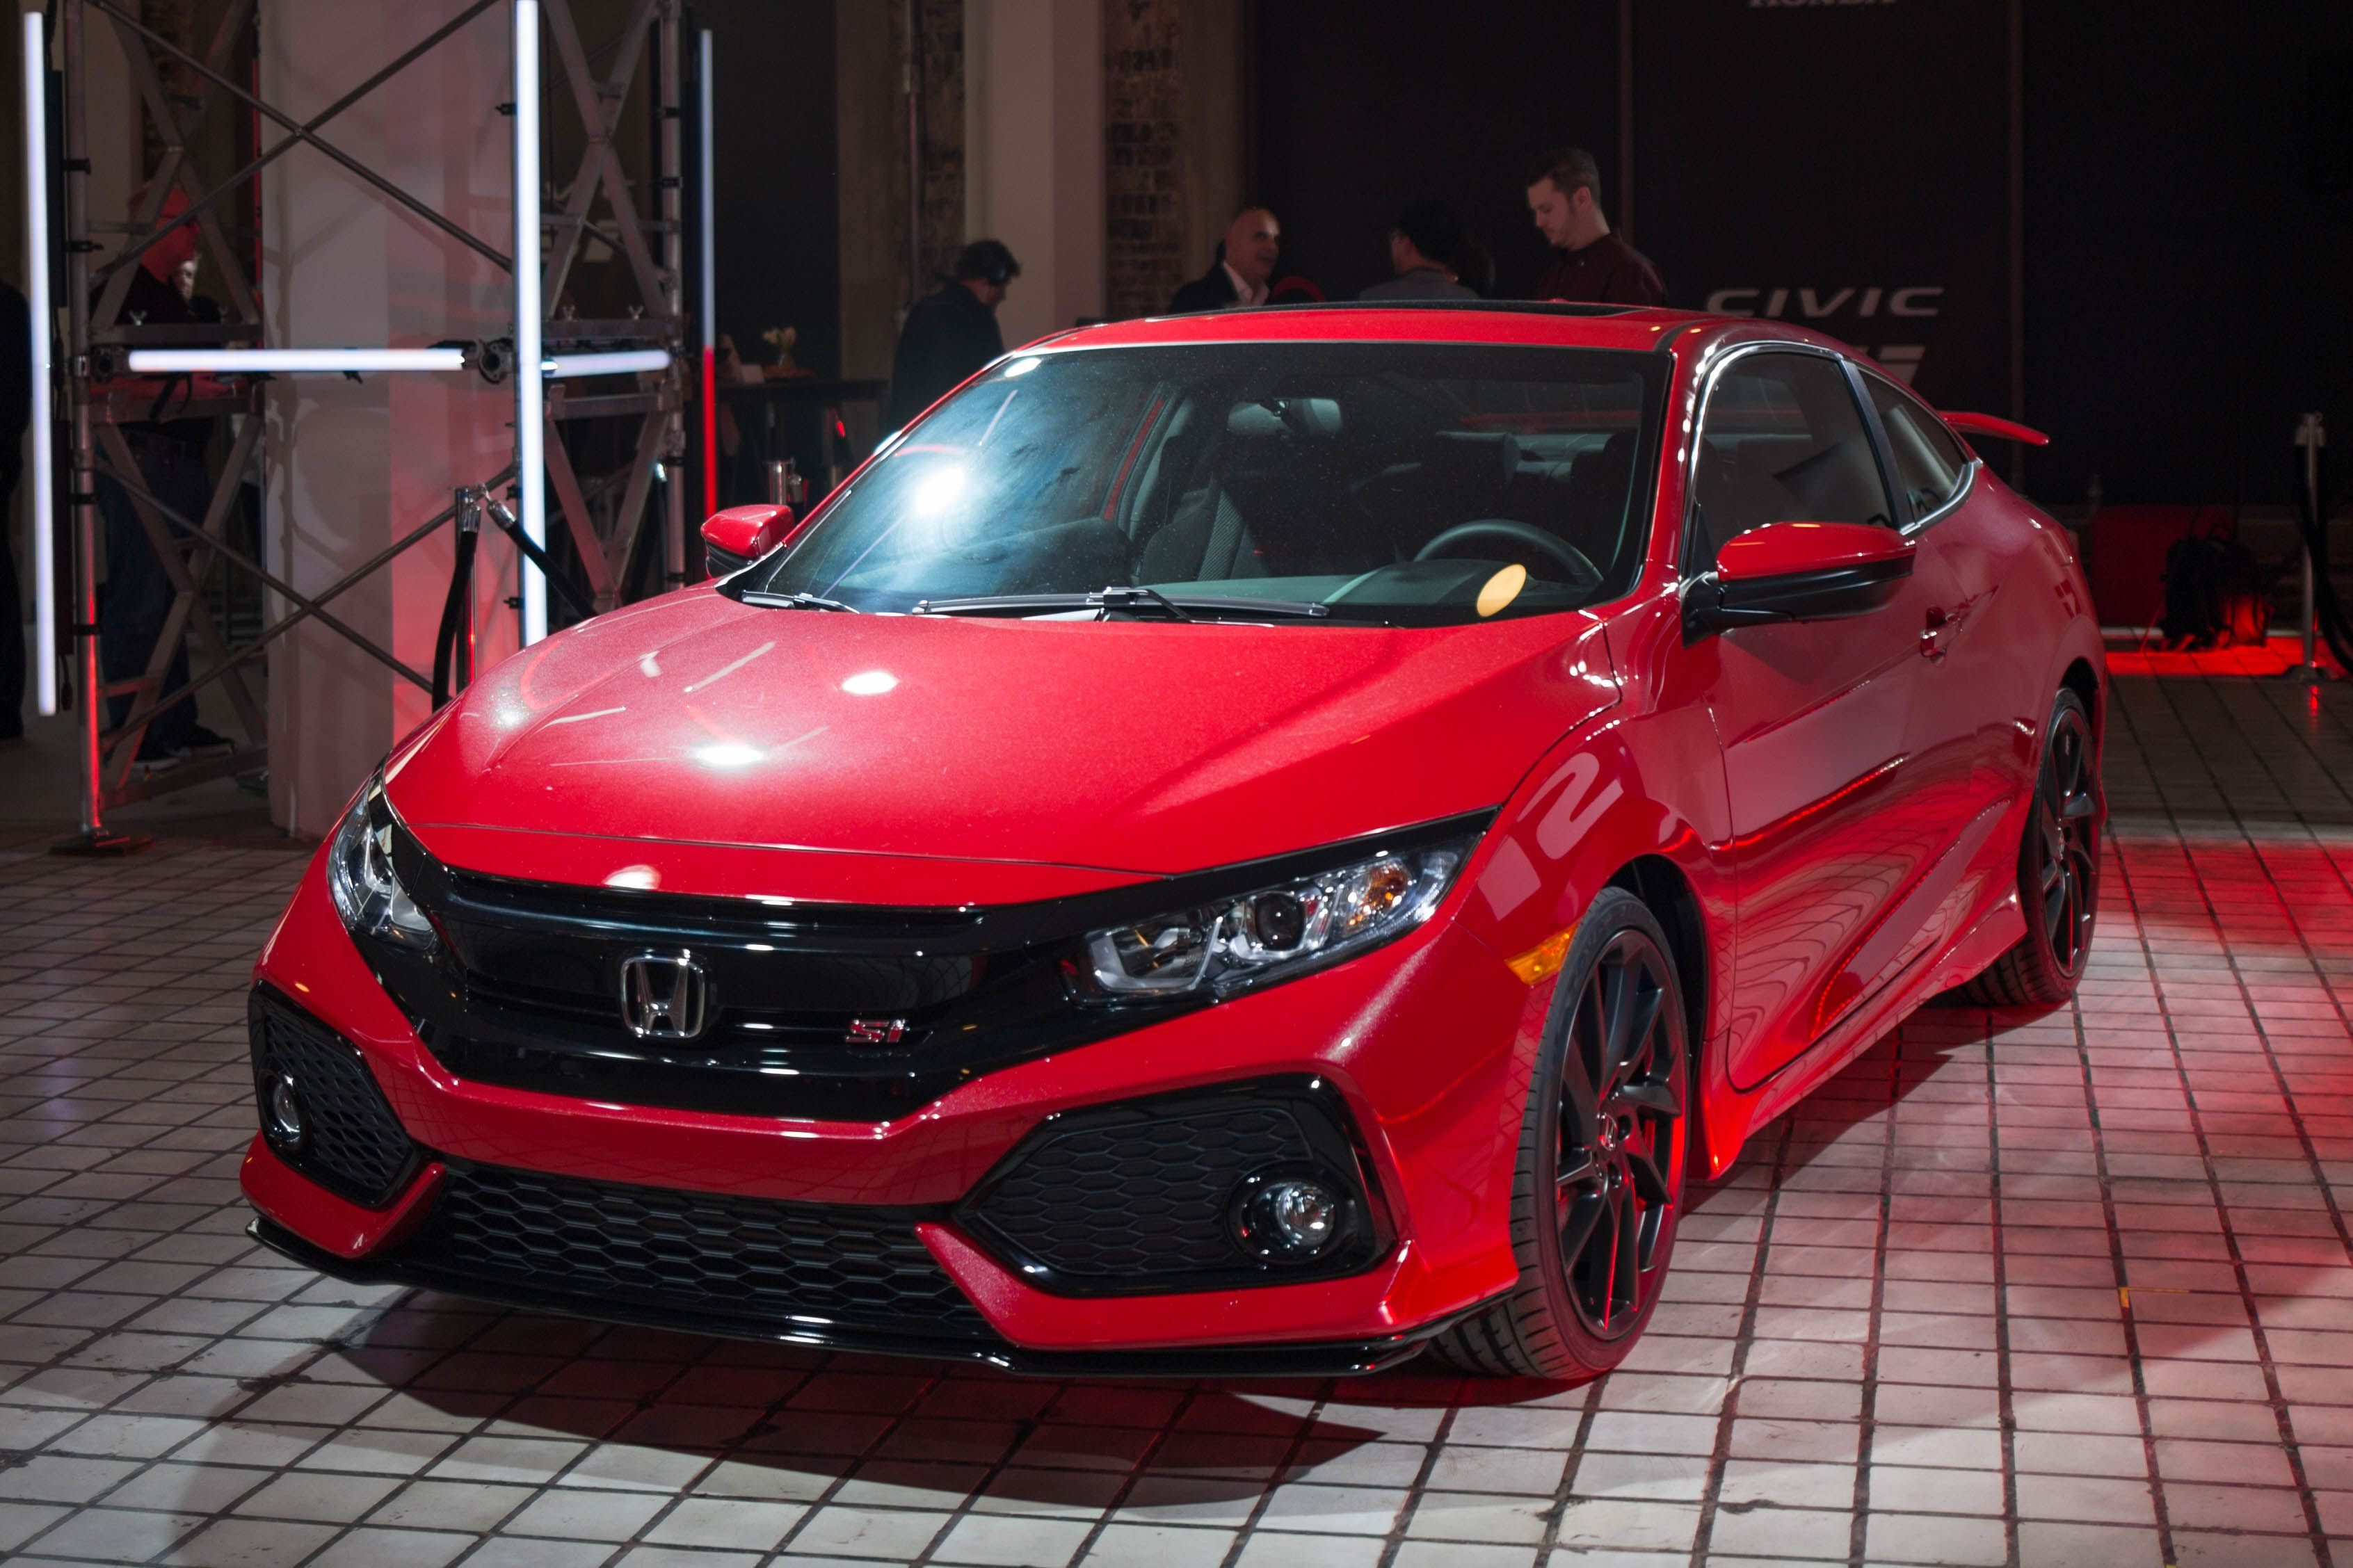 The New Honda Civic Si Looks Like An Origami Bringer Of Fun And Happiness Honda Civic Si Honda Civic Honda Civic Vtec